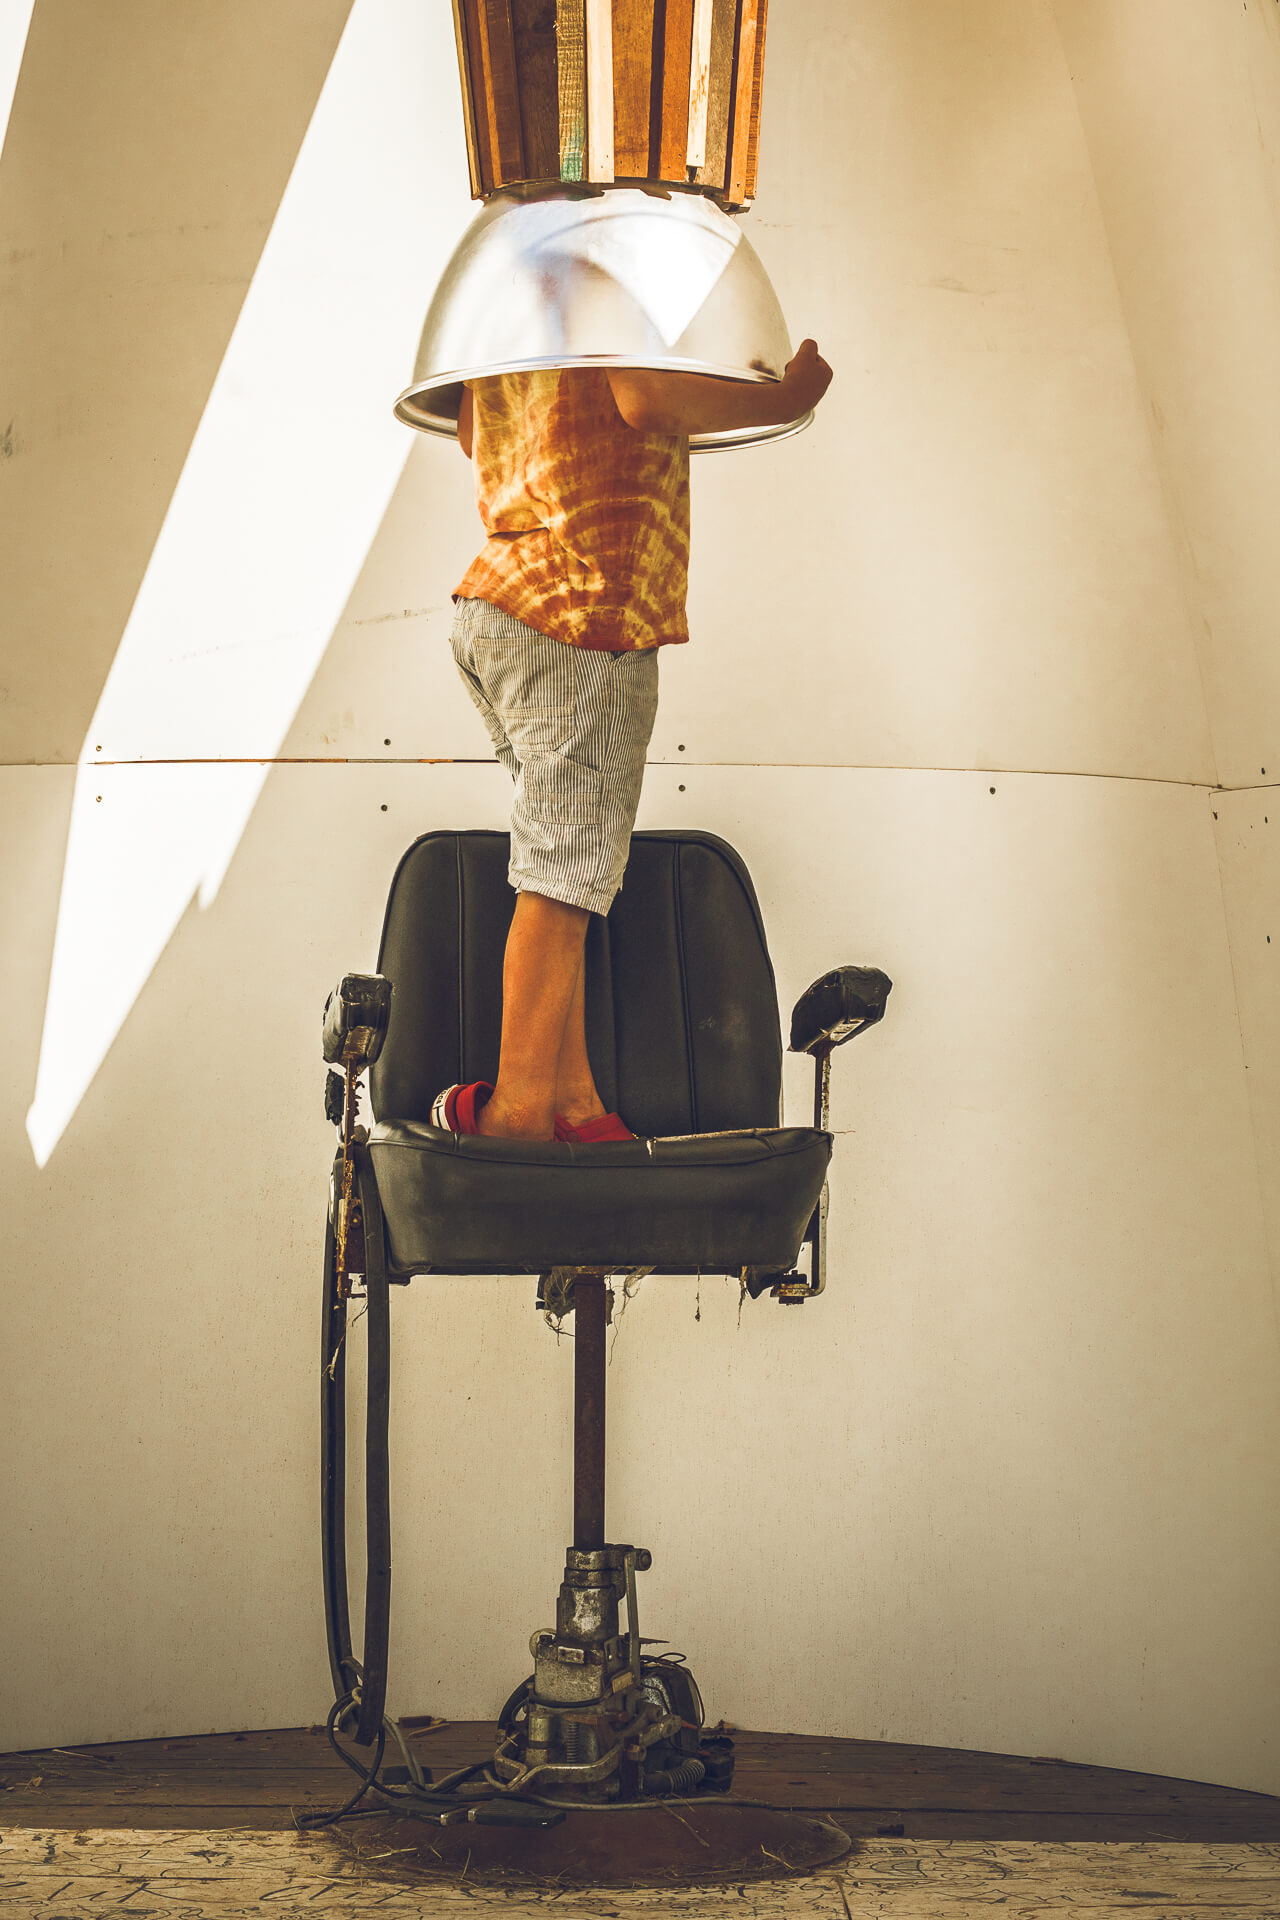 A strange image. In the image can be seen a black coloured adjustable height chair, above which is a hollow bronze coloured tube, with a silver opening that is wide enough for the young boy who is standing on the chair to get his head and shoulders into.